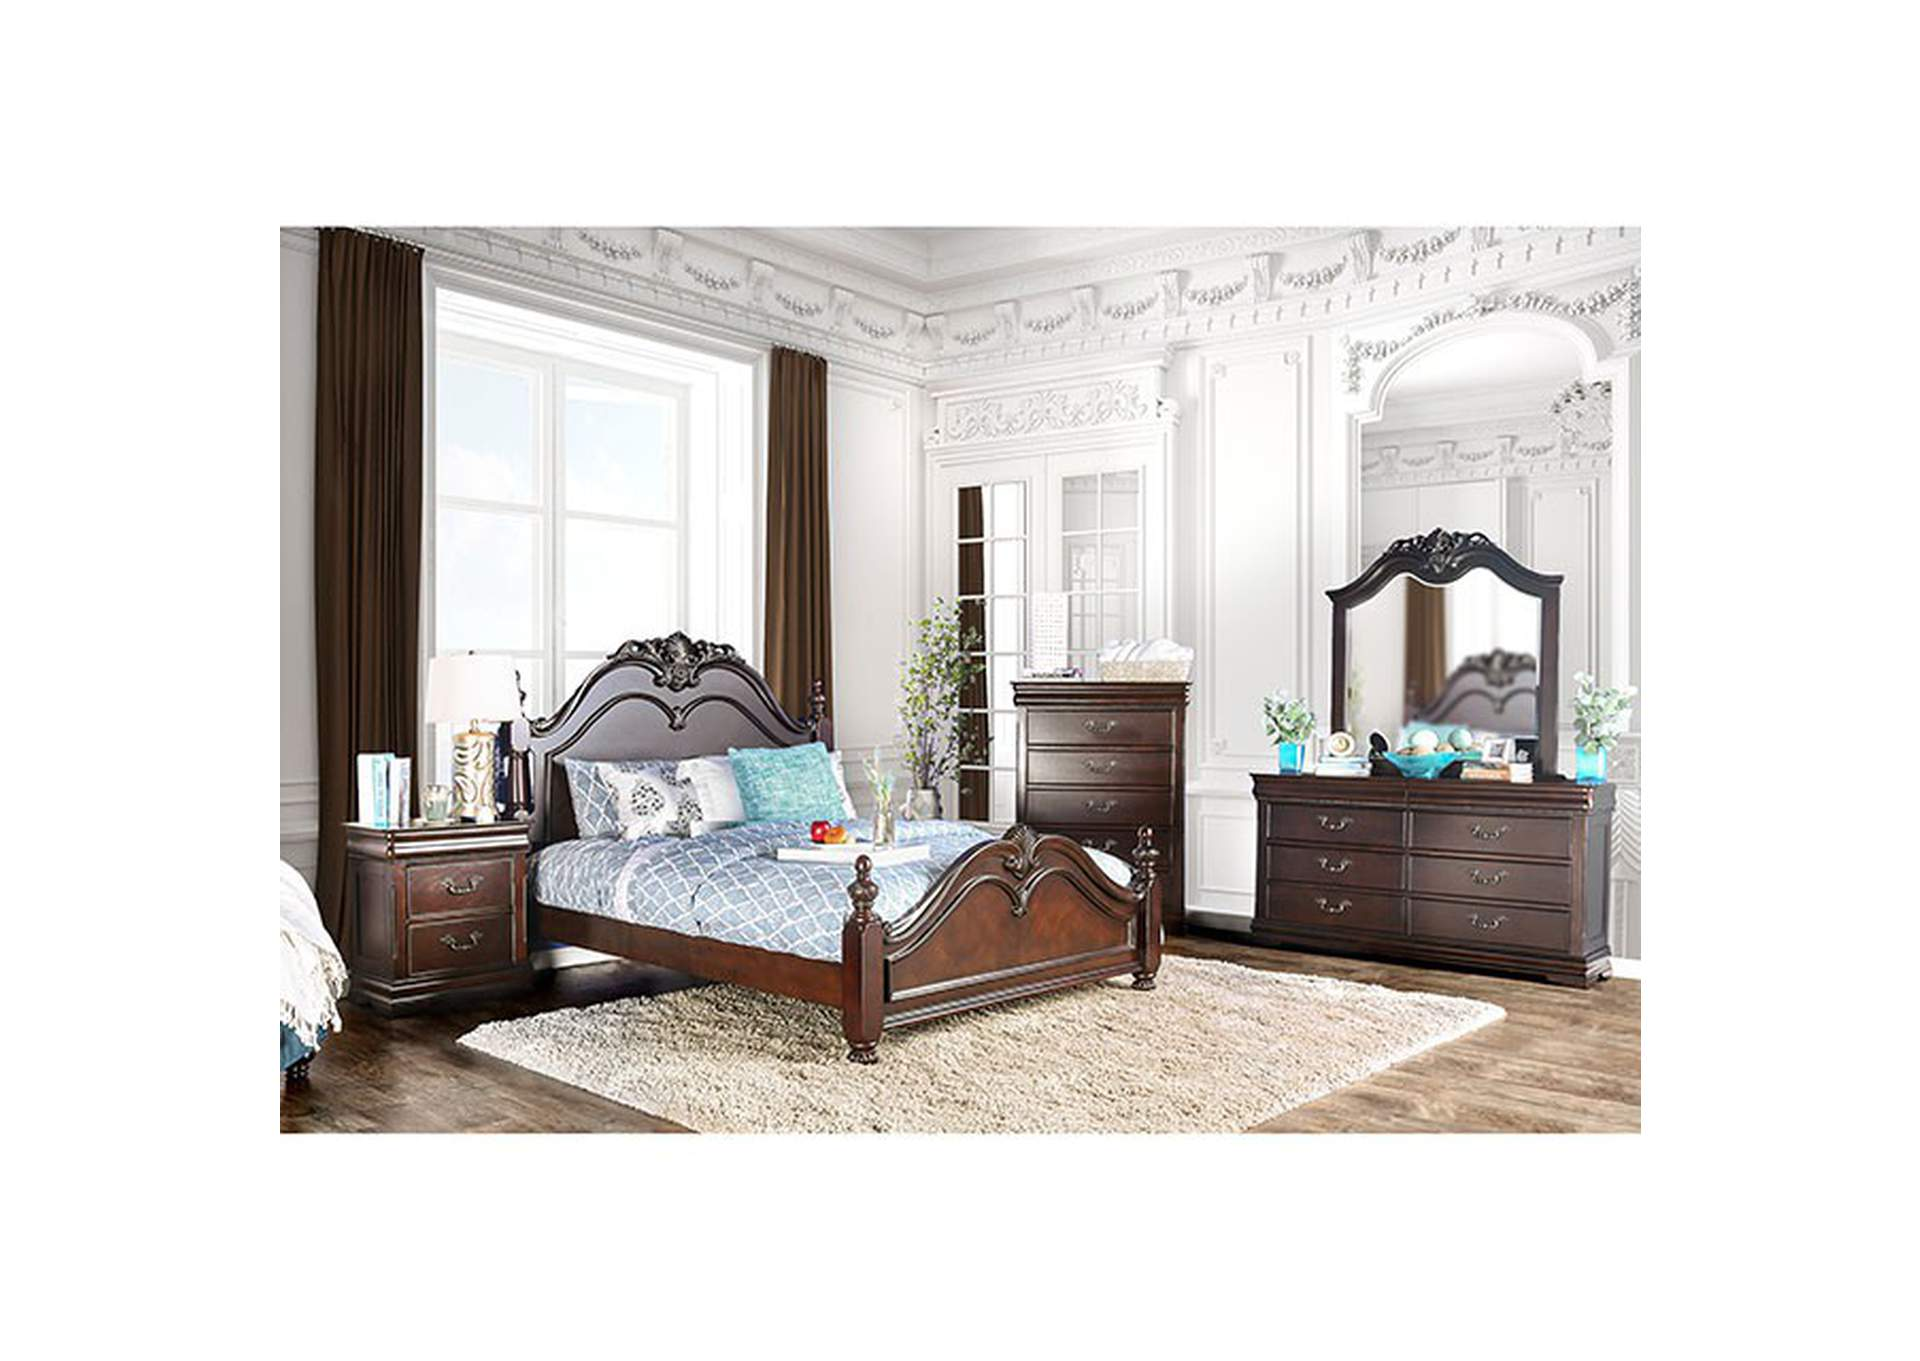 Mandura Cherry Queen Poster Platform Bed,Furniture of America